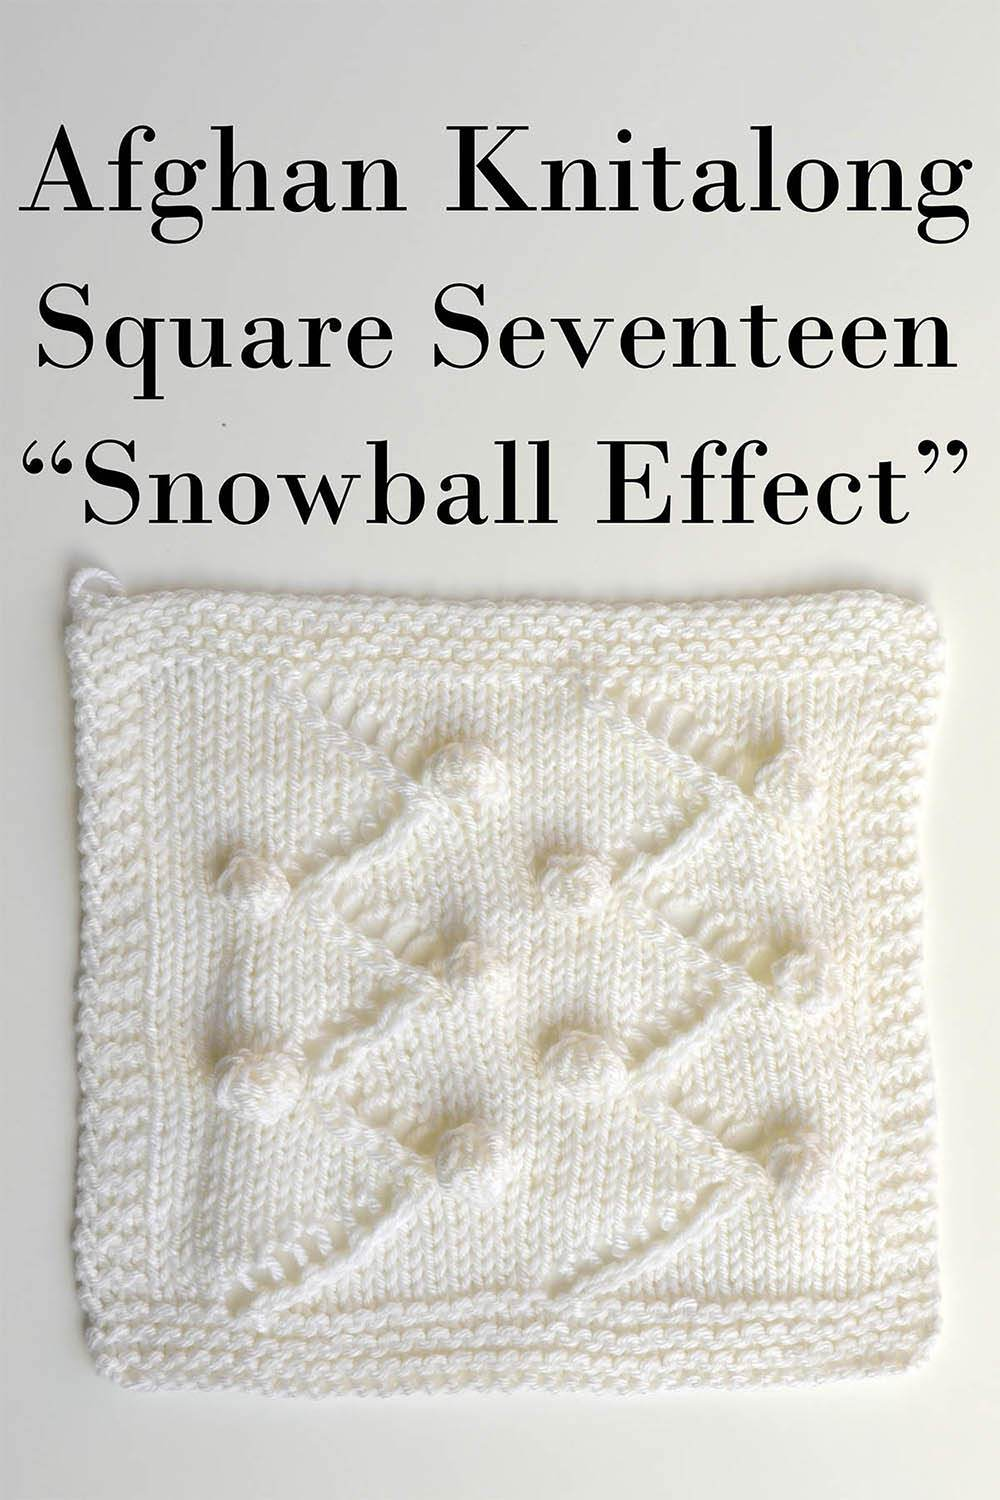 Afghan Knitalong Square 17 - Snowball Effect Pattern Universal Yarn